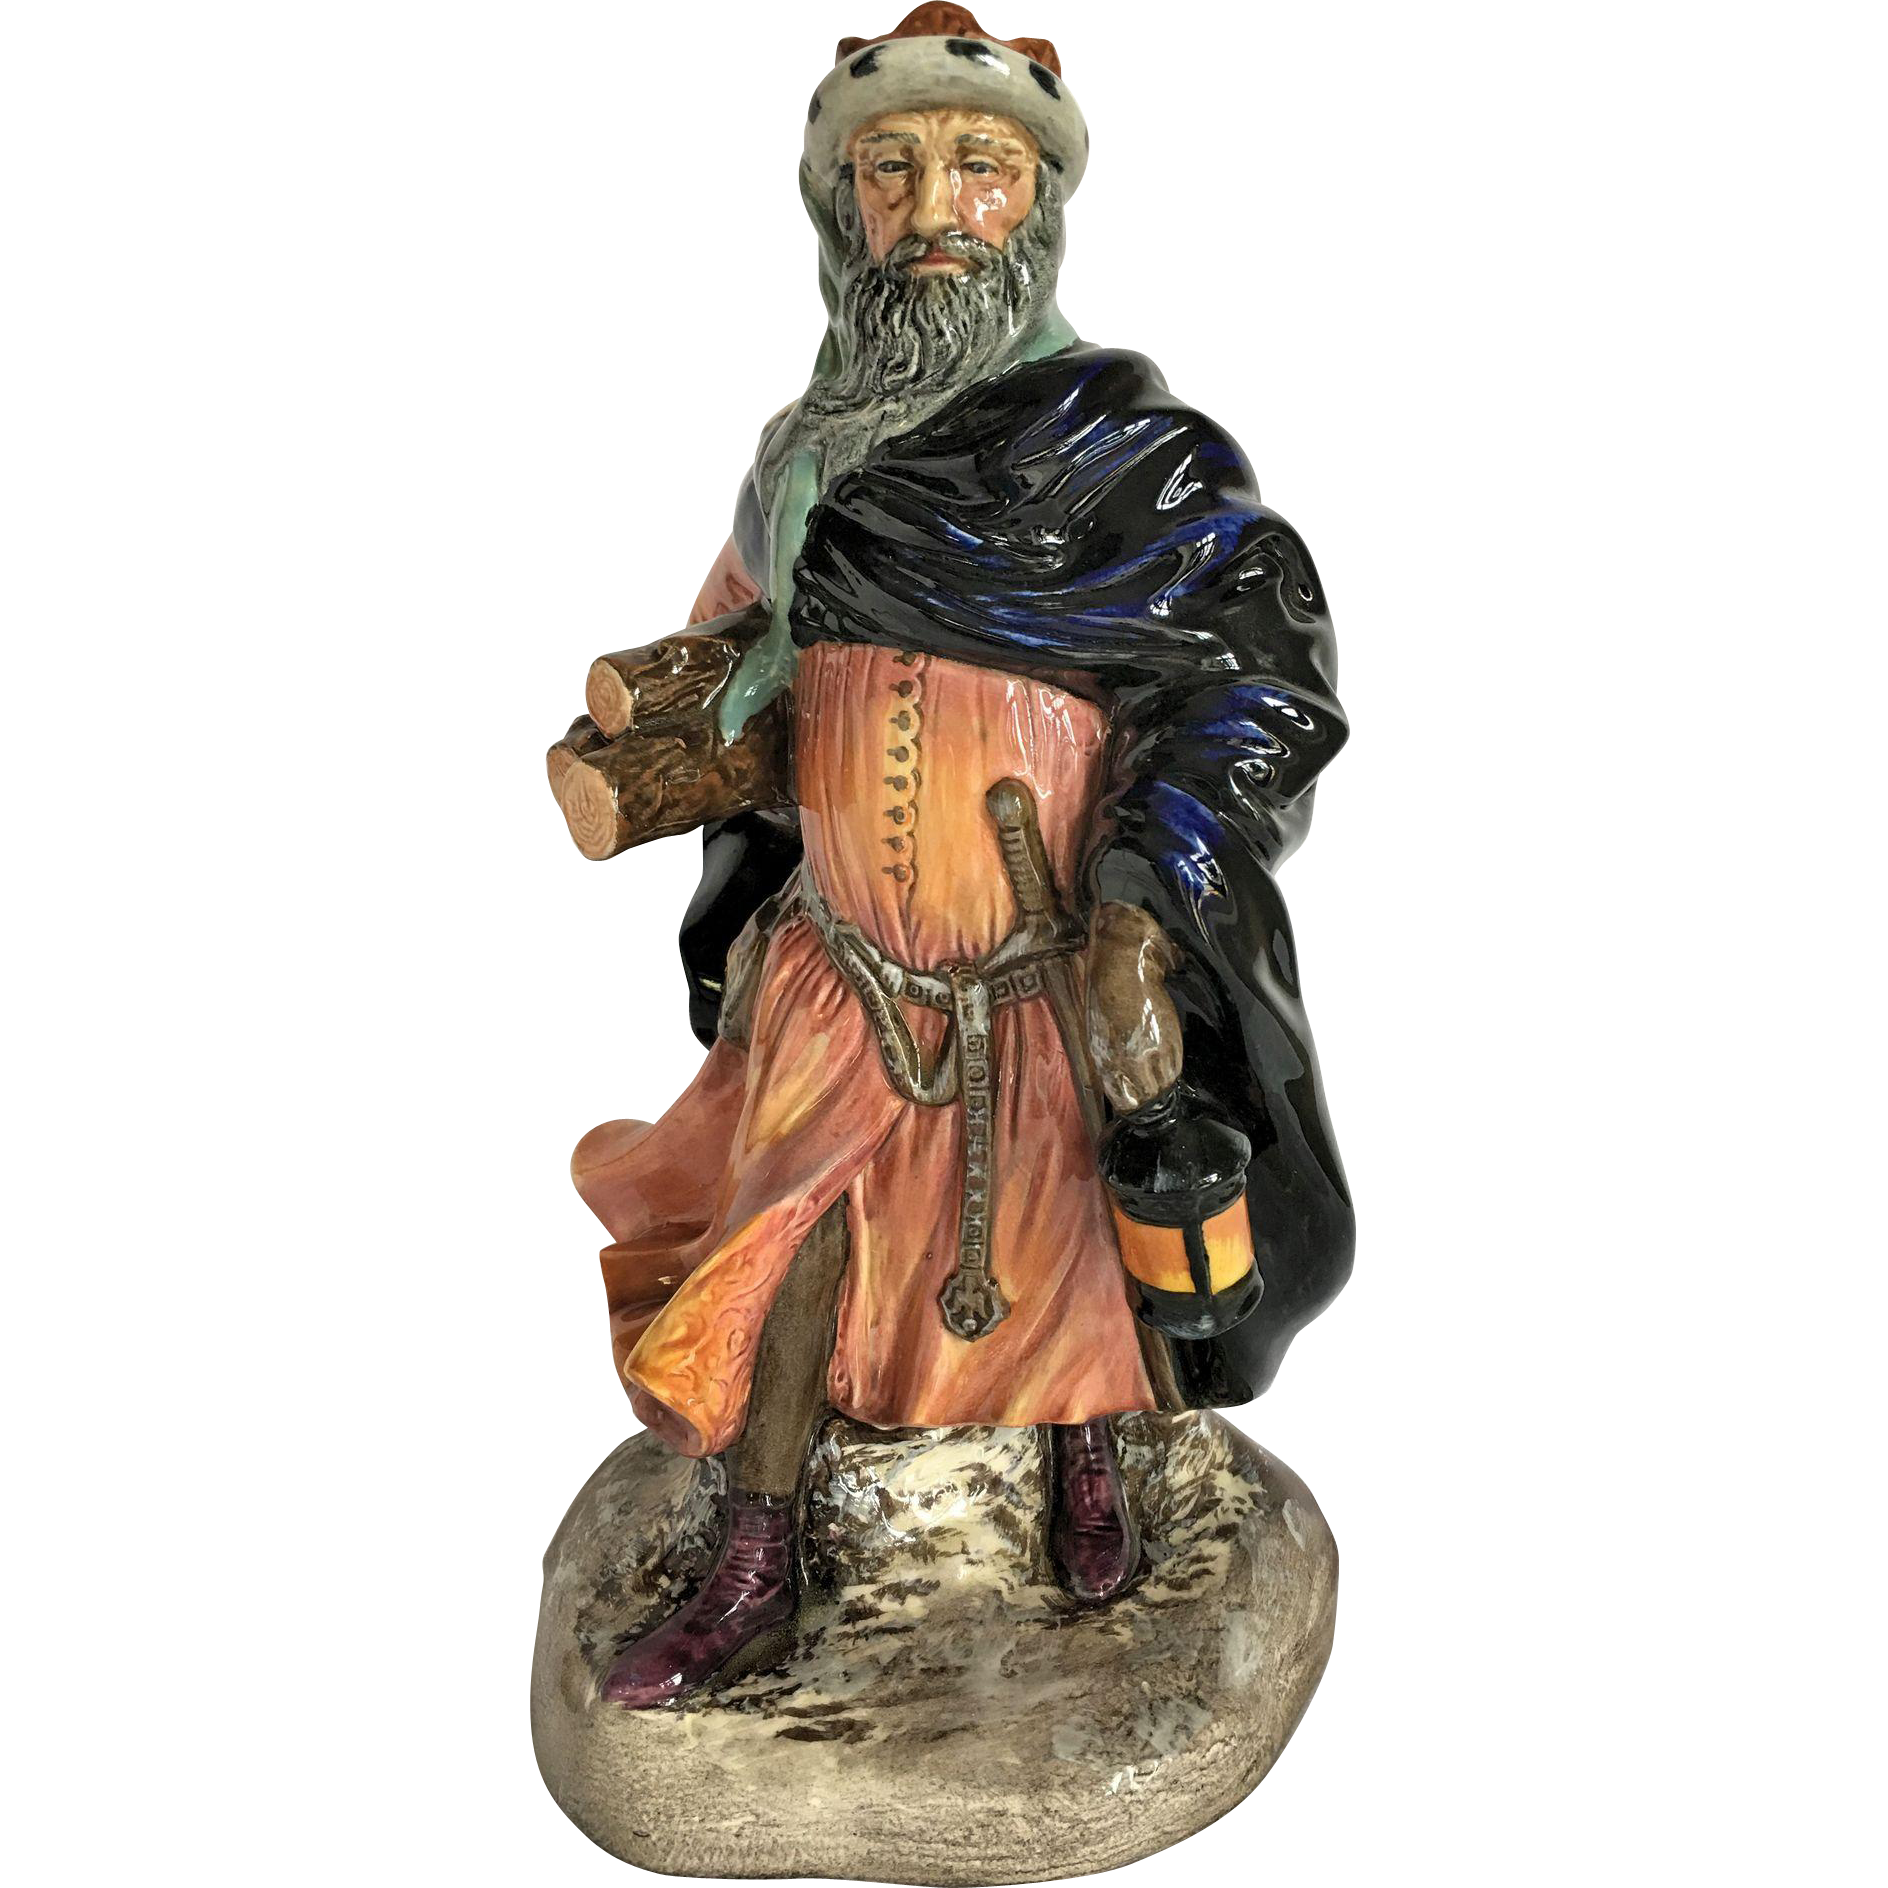 Png images of count wenceslaus statue. Royal doulton edition good